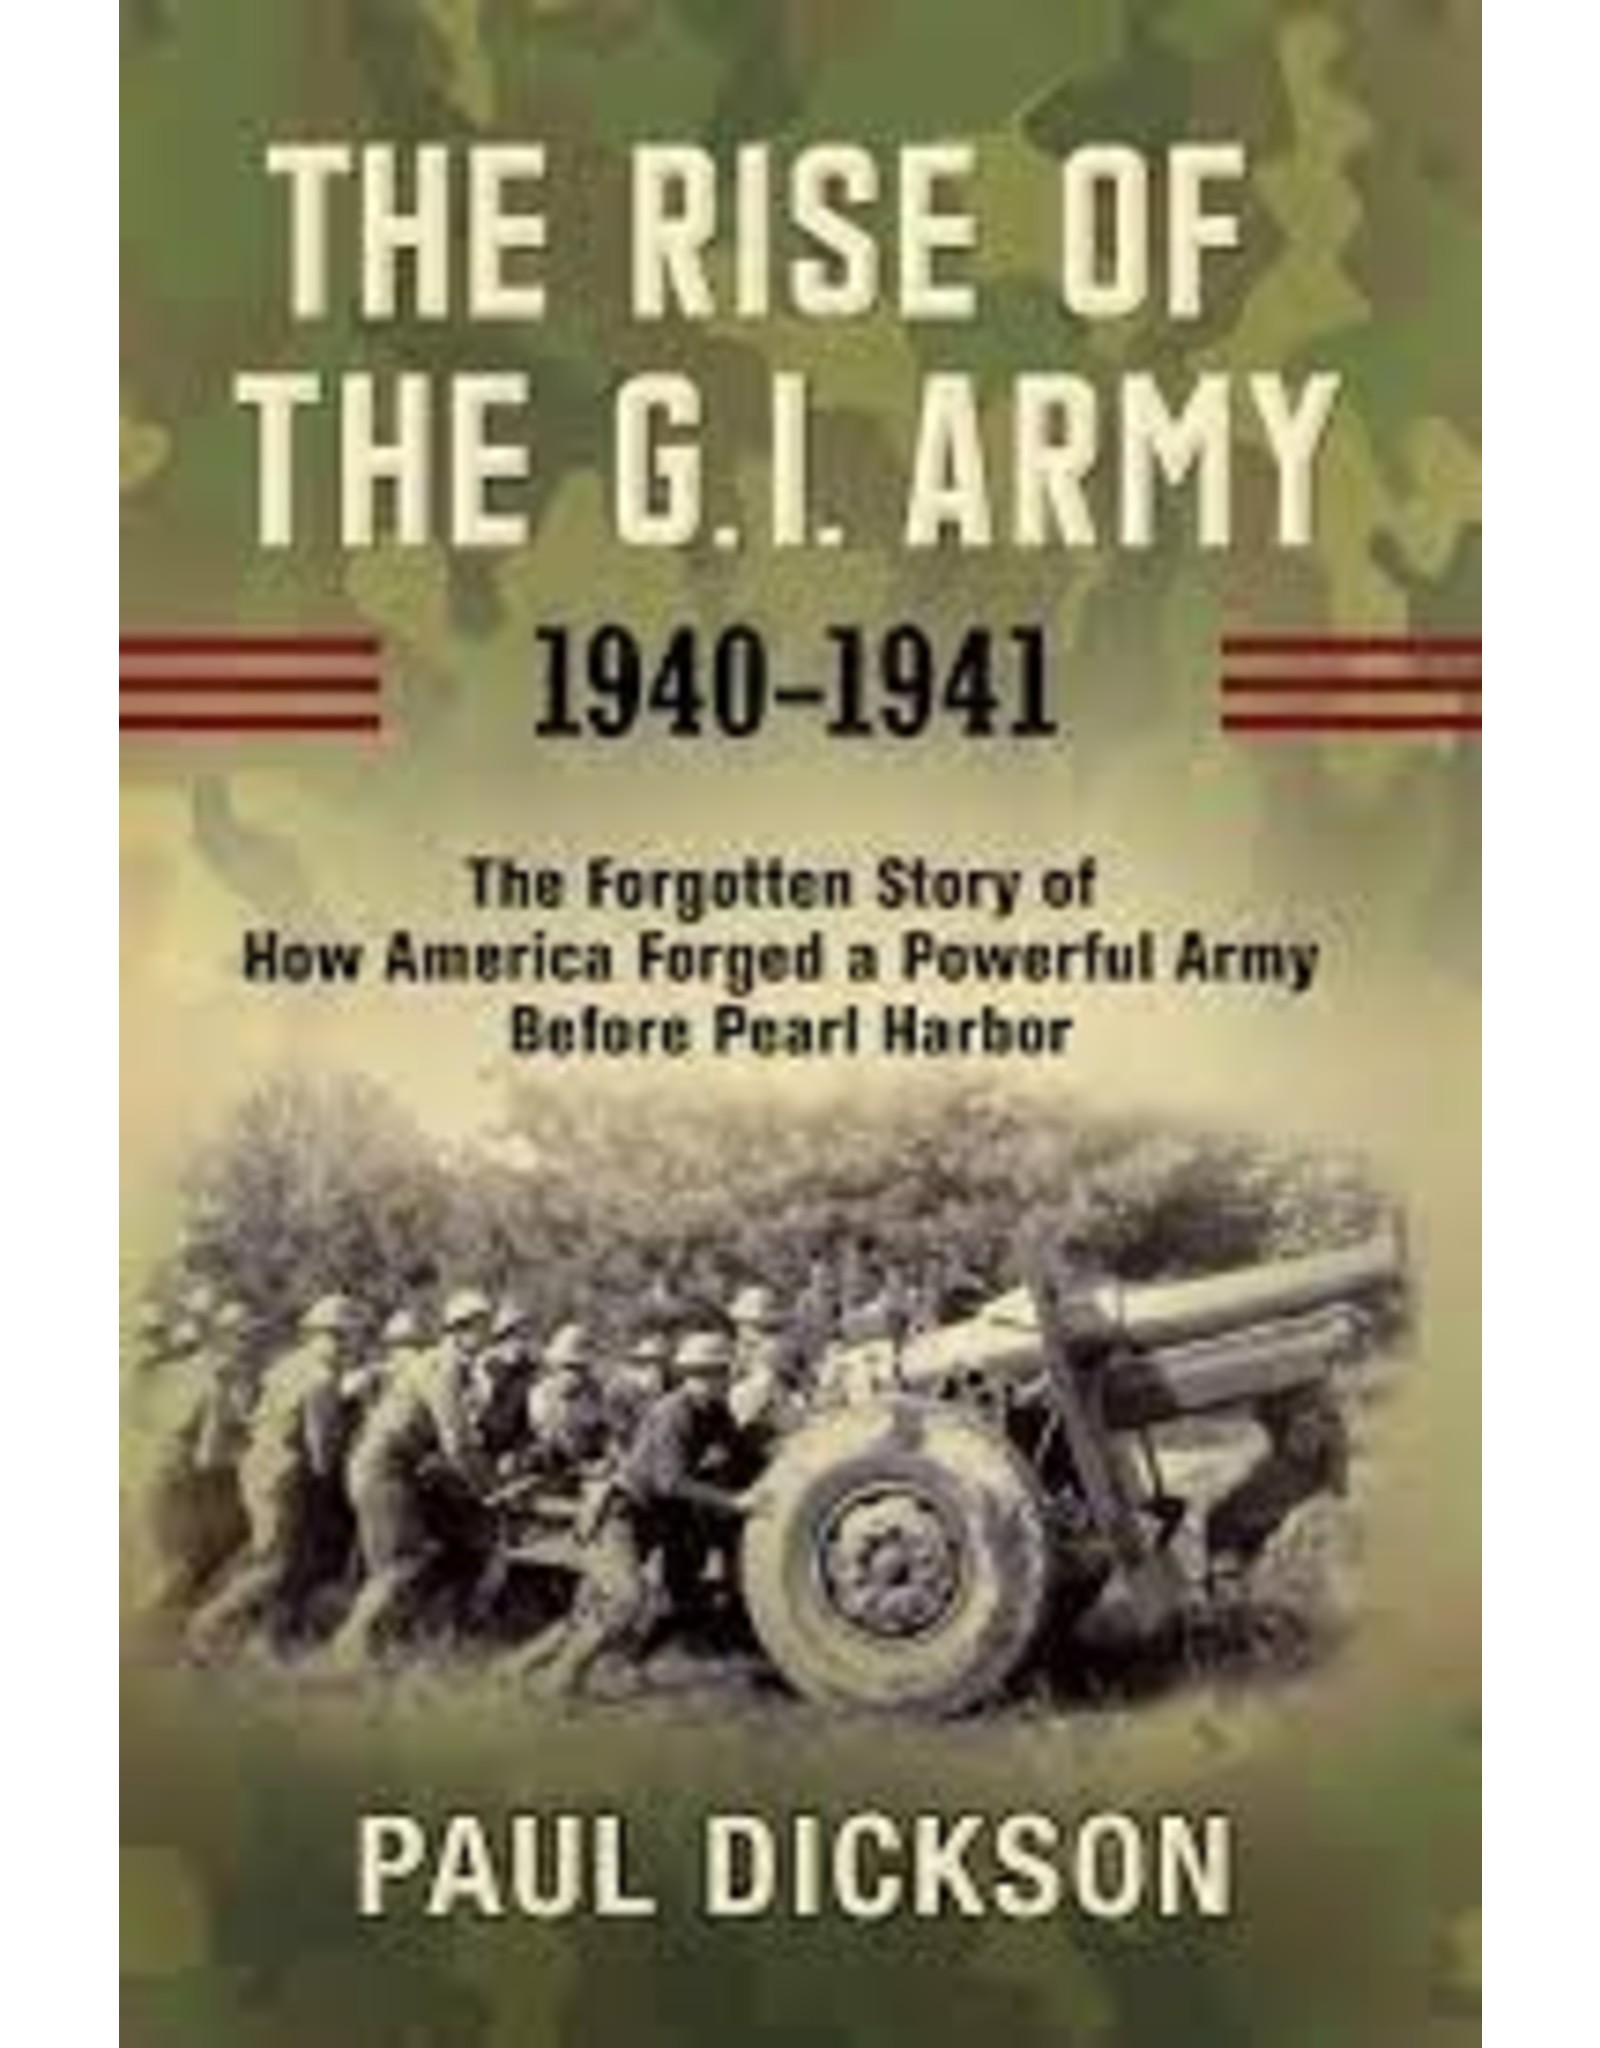 Books The Rise of G . I. Army : The Forgotten Story of How America Forged a Powerful  Army Before Pearl Harbor by